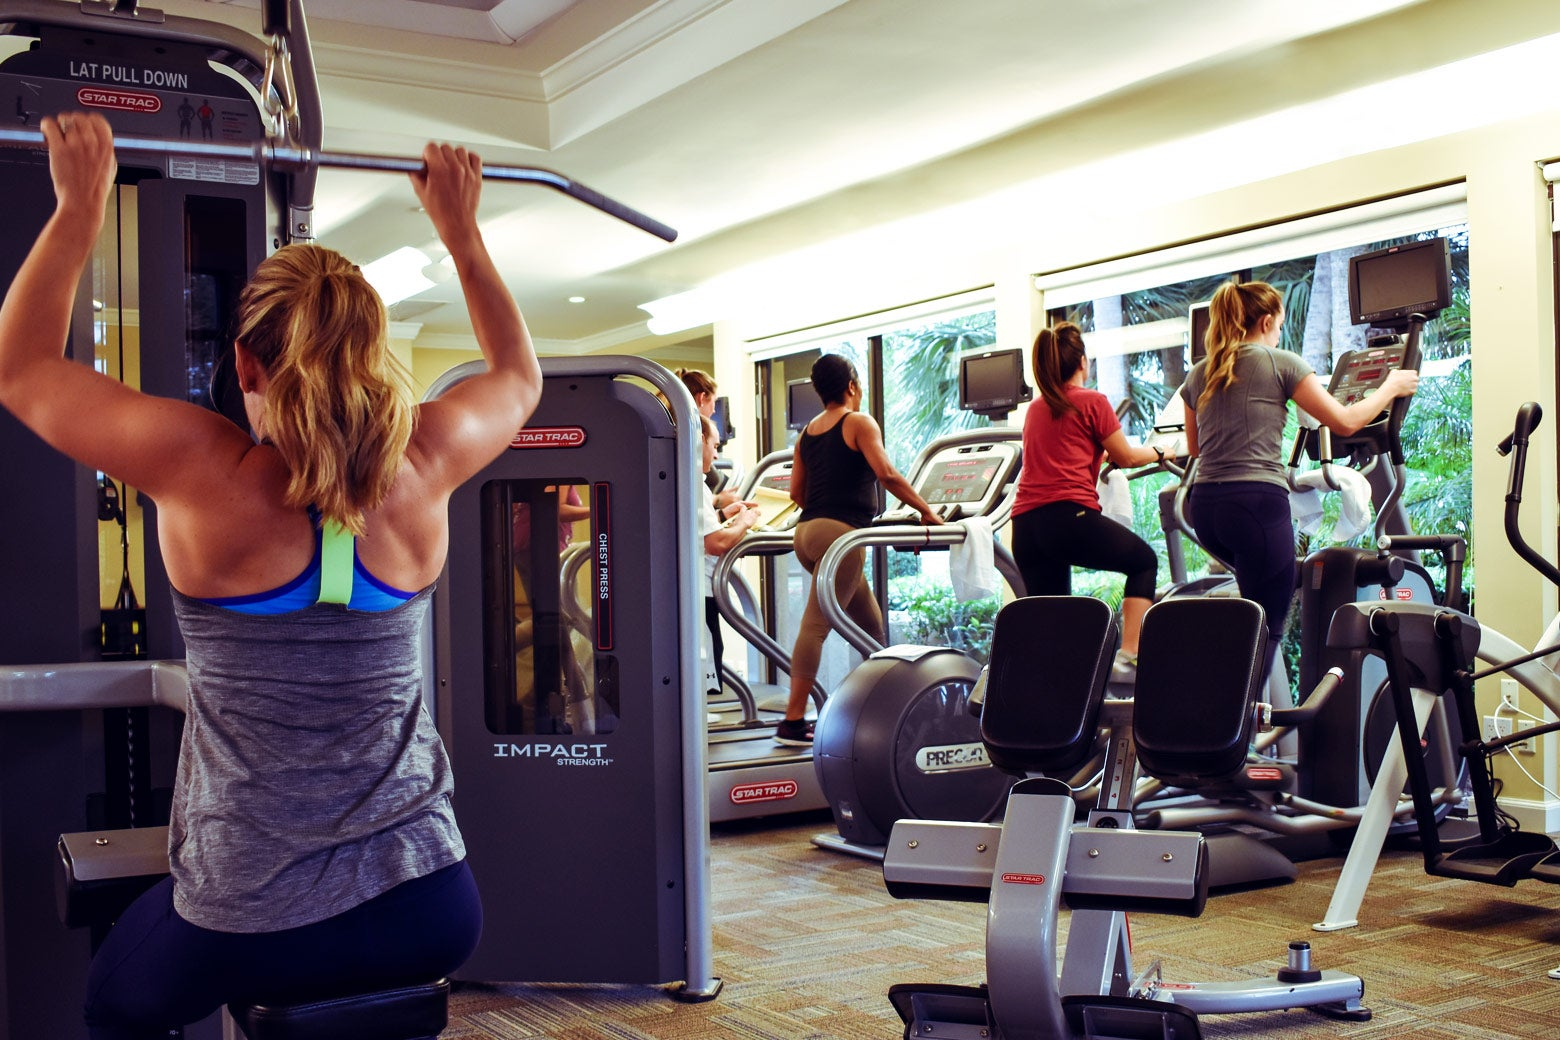 Employees of the Breakers work out in a fitness center.